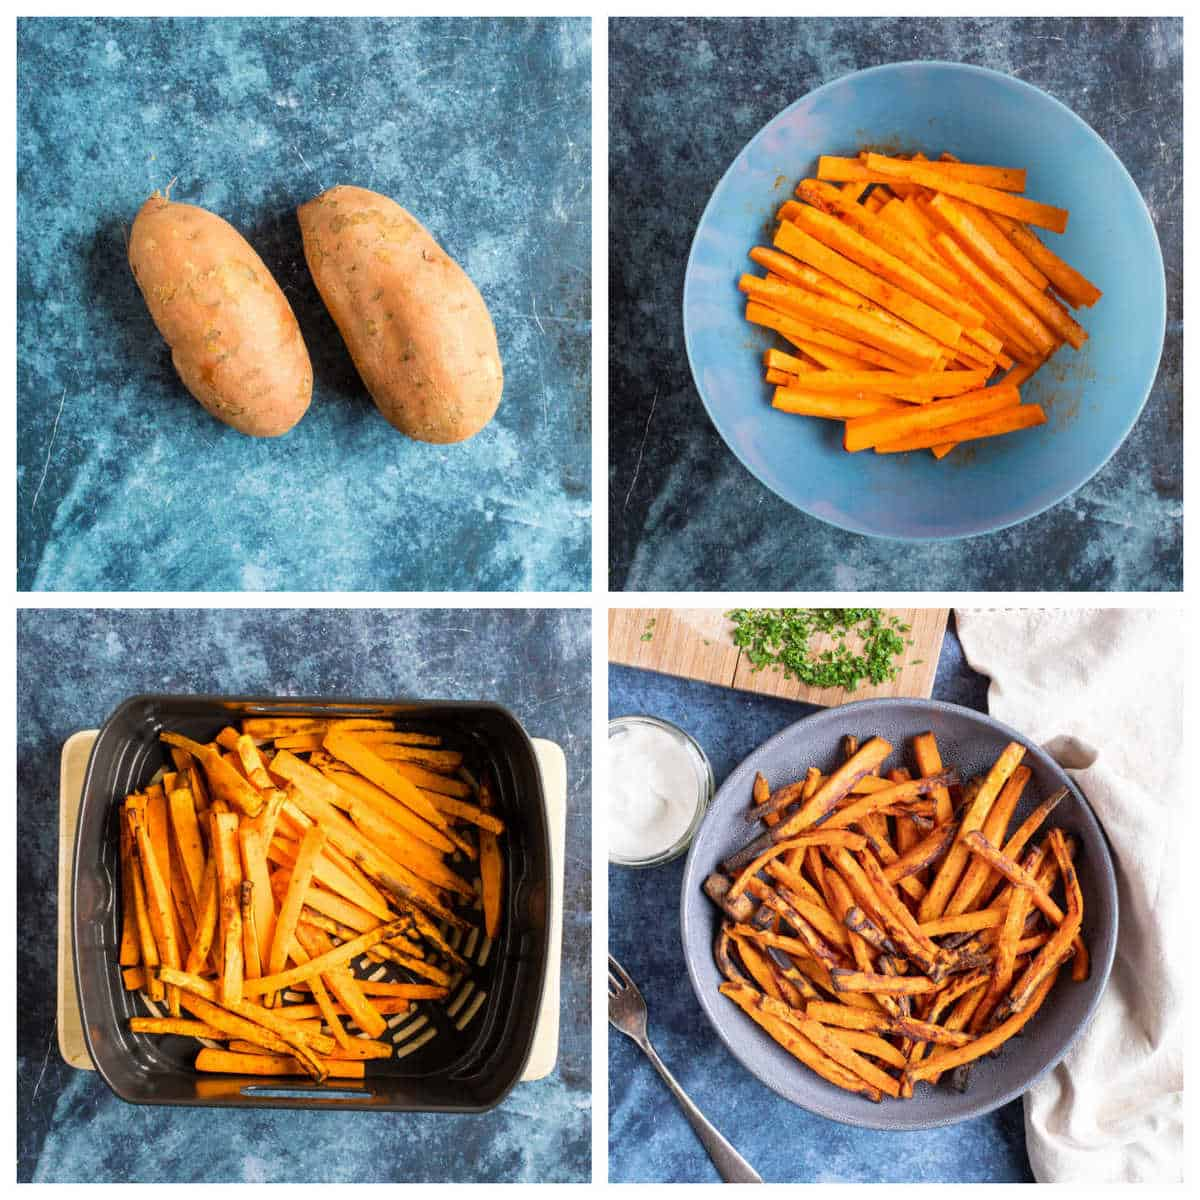 Step by step photo instruction collage for making air fryer sweet potato fries.